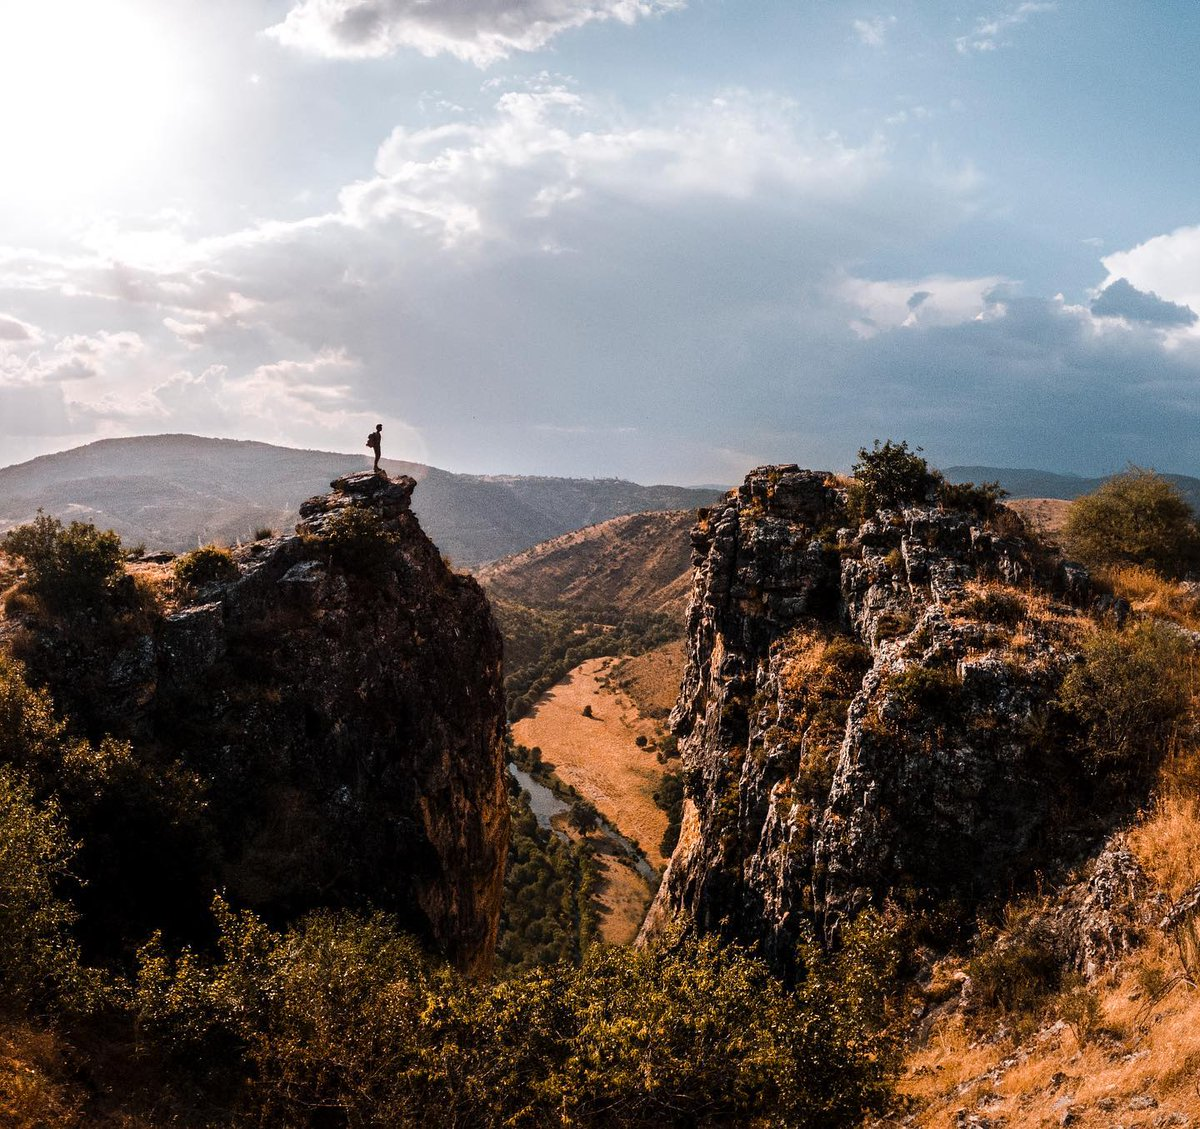 Living life on the edge, in search of what the future holds. Madrid Spain 📸🧡Carlos  @the_world_with_u (Instagram)   #nubear #nugrip #gopro #goprohero9 #gopromax #dji #djiglobal  #gadget #indiegogo #photooftheday #techlover #photography #traveling #adventure #goexplore https://t.co/X9TW5rKlVl